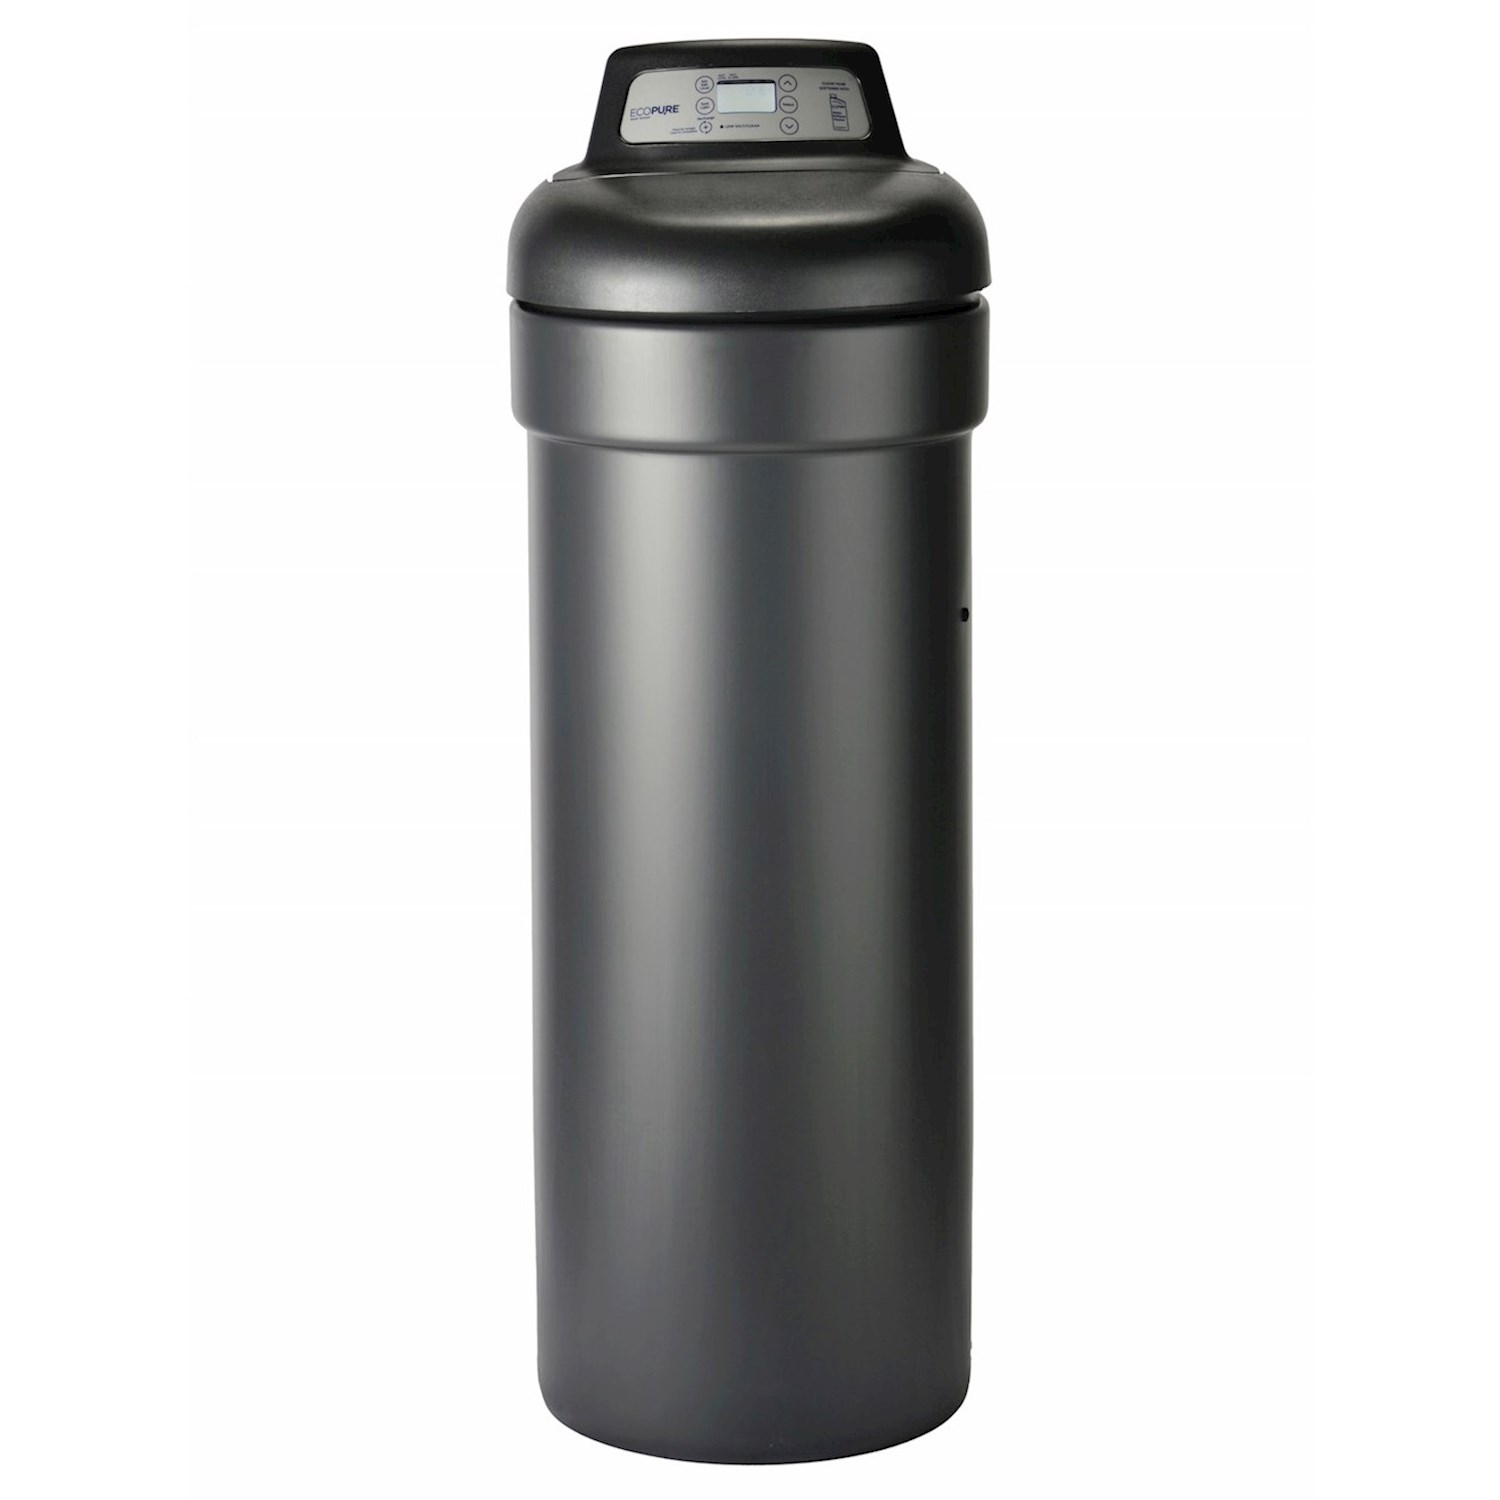 WATER SOFTENER 31000 GRAIN